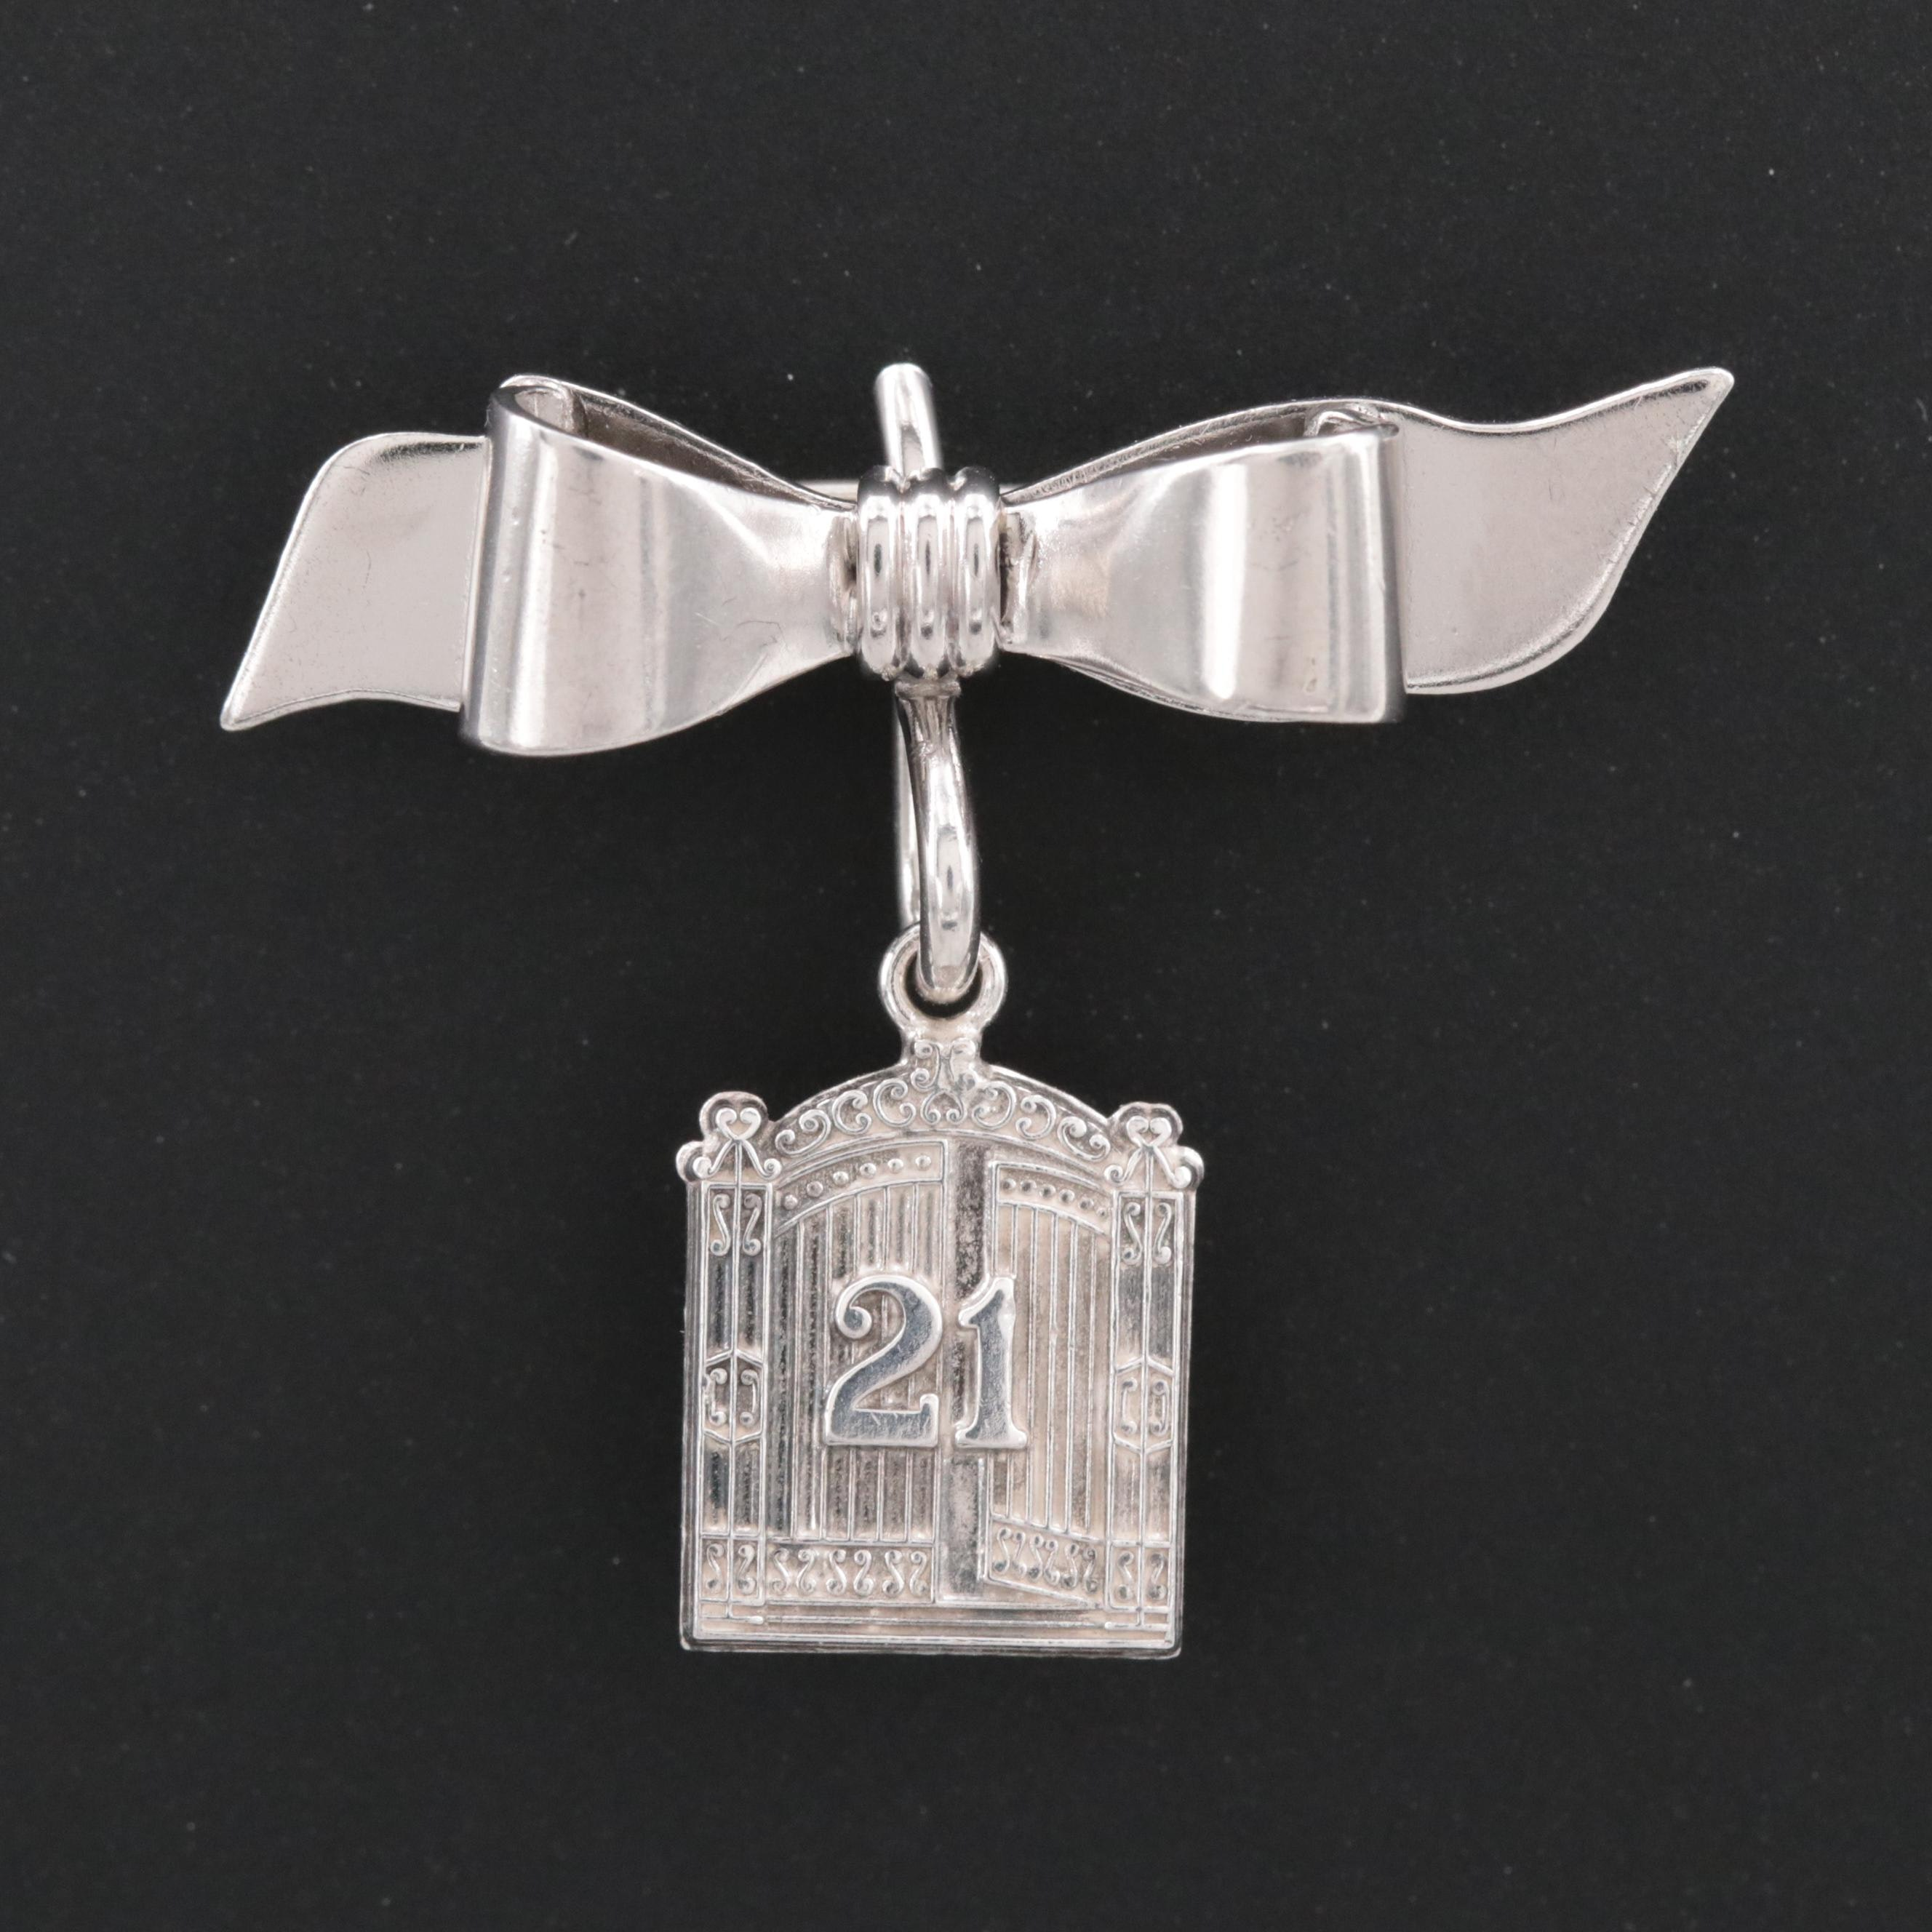 Hayward Sterling Silver Bow and Gate Pin